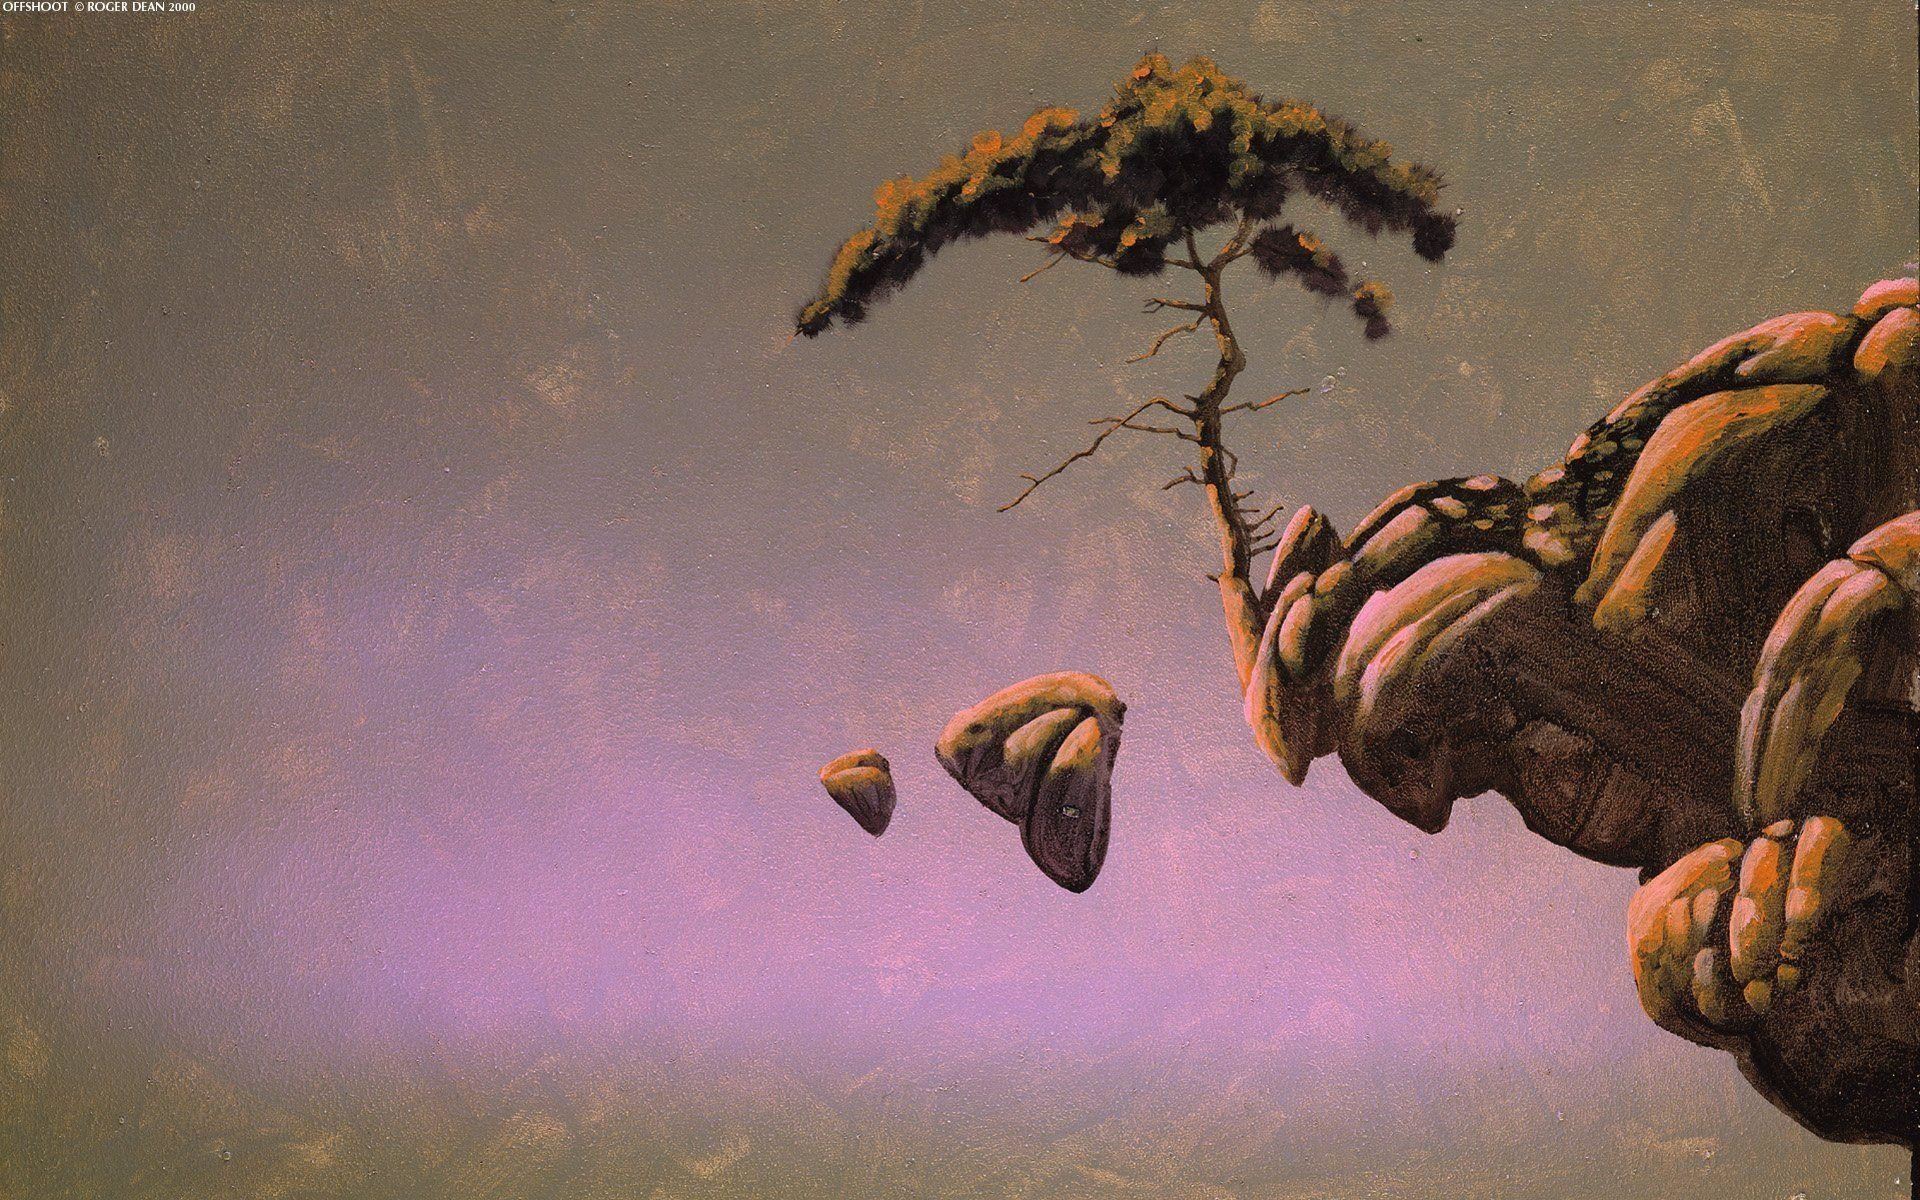 1920x1200 Trees rocks Roger Dean artwork wallpaper |  | 307042 .